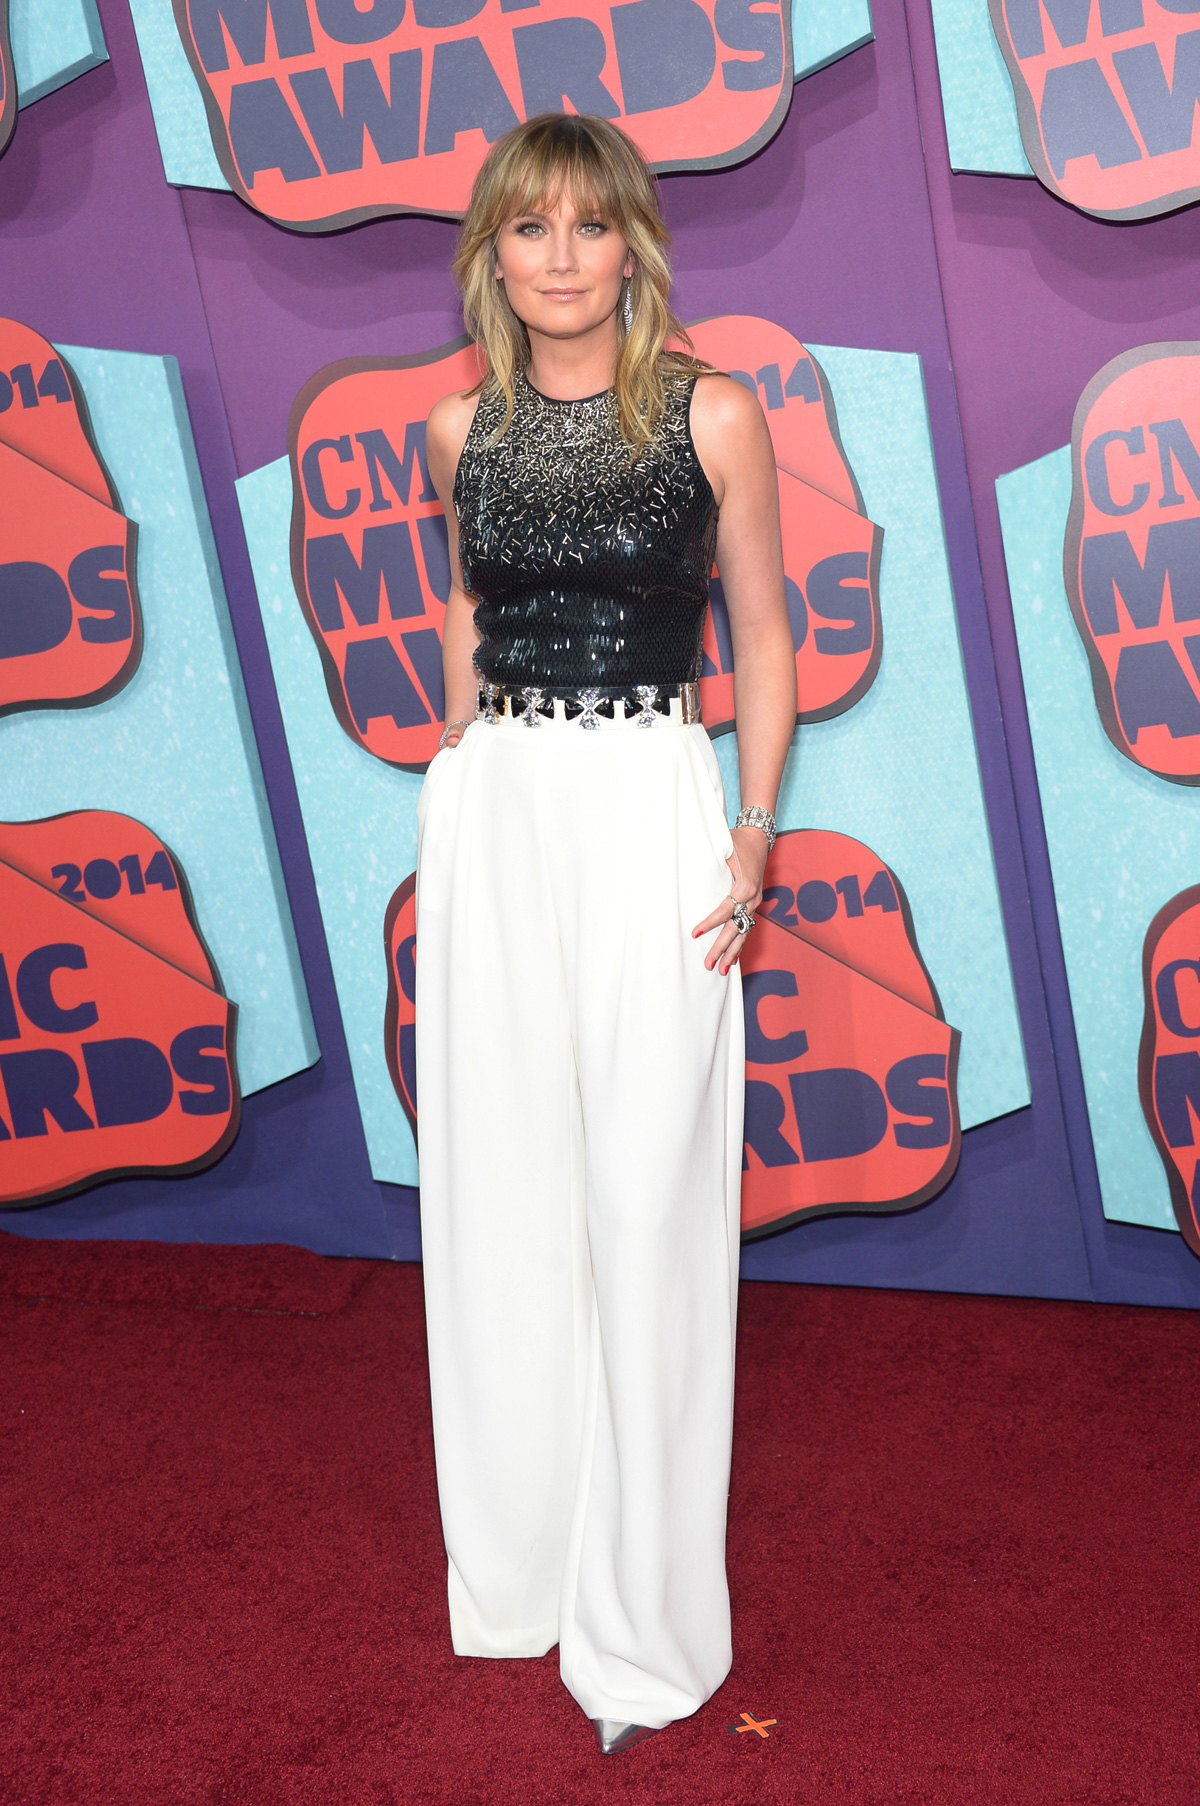 Jennifer Nettlesat the the 2014 CMT Music Awards